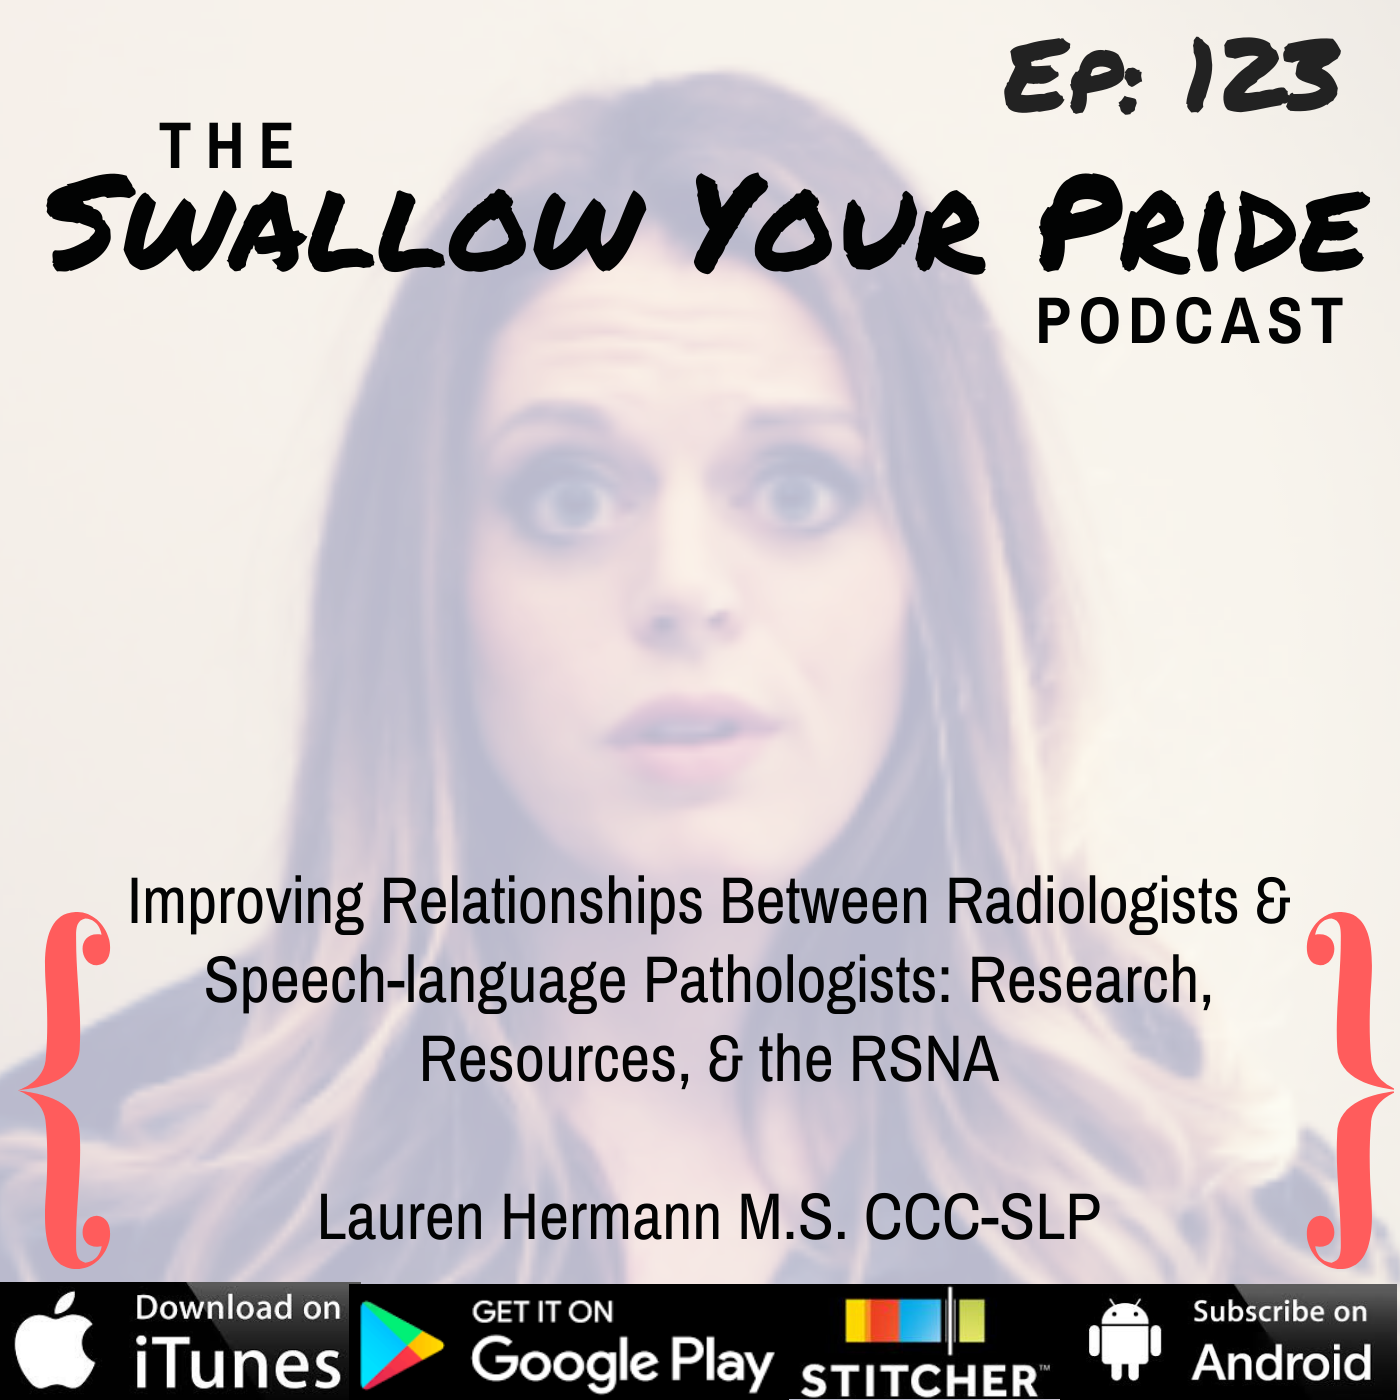 123 – Lauren Hermann, MS, CCC-SLP – Improving Relationships Between Radiologists and Speech-language Pathologists: Research, Resources, and the RSNA